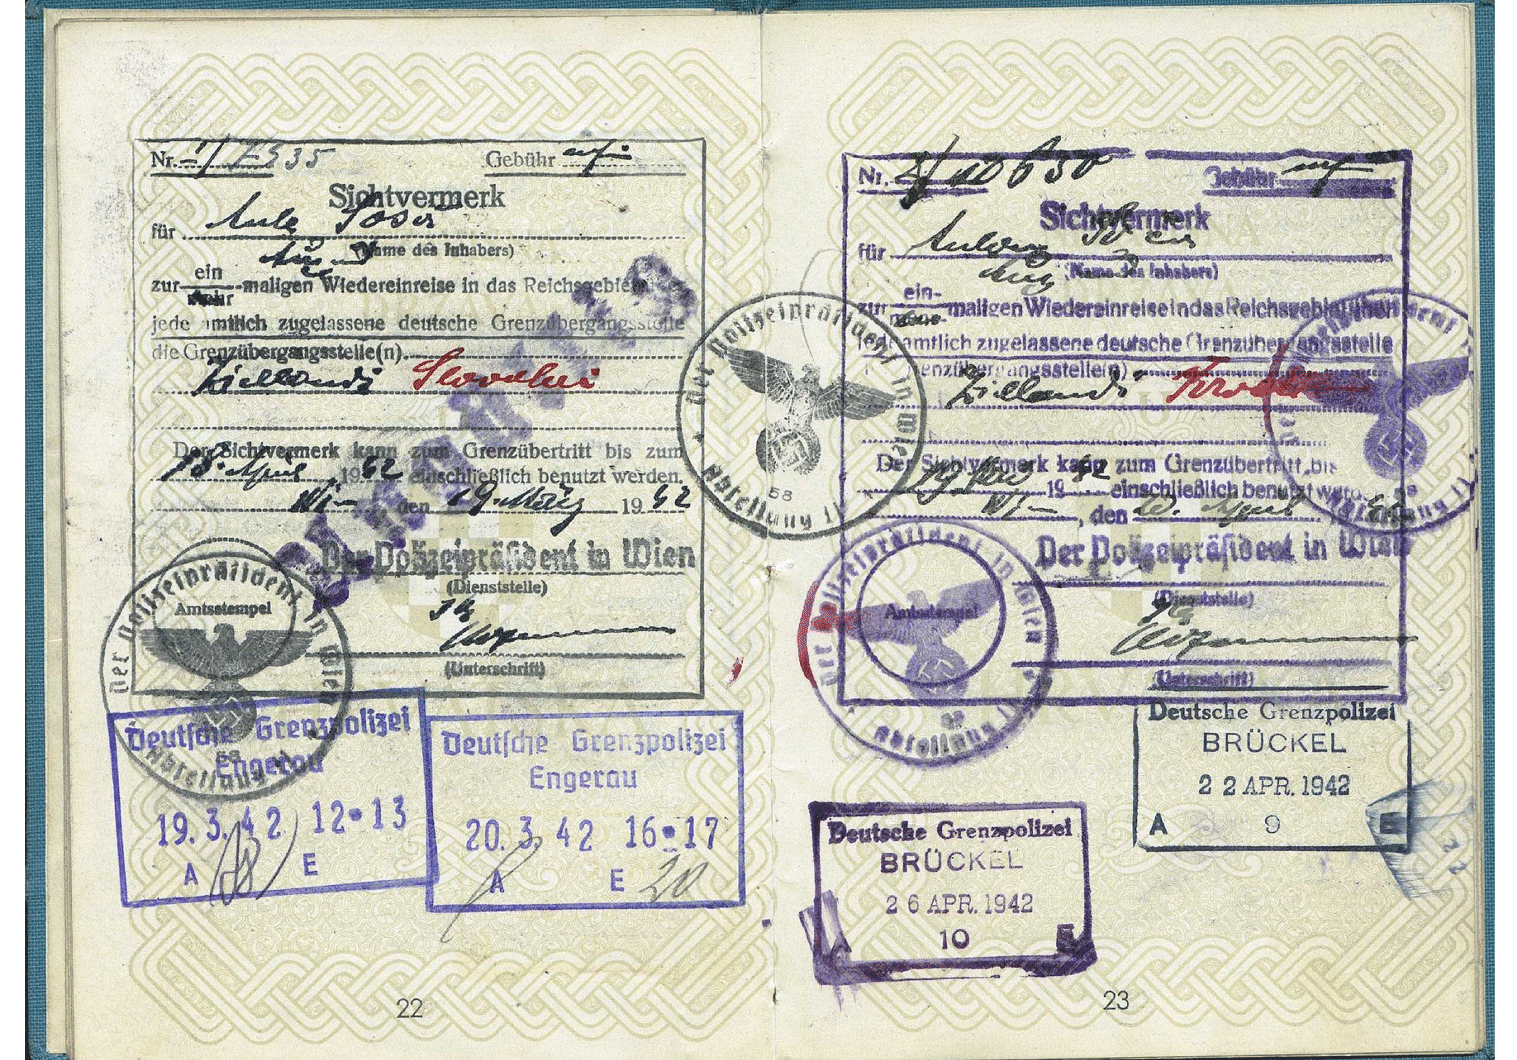 WW2 German passport visa